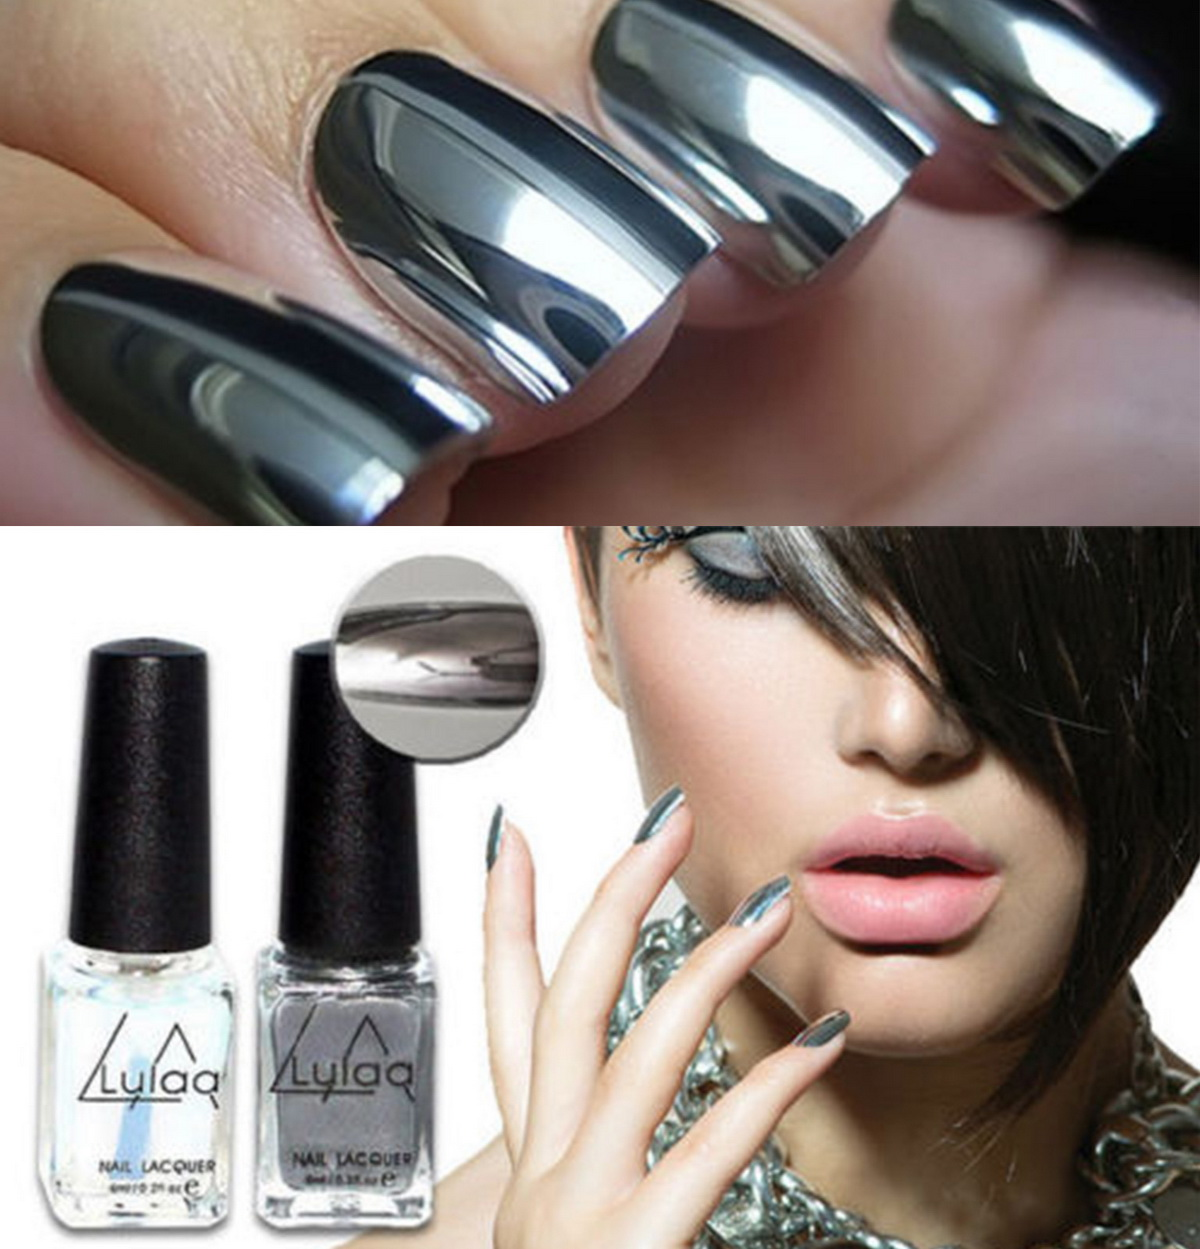 Comfortable Games Nail Art Thick Justice Nail Polish Solid Nail Fungus Pictures Toenails Nail Polish In Eye What To Do Old Nail Polish That Stays On For 3 Weeks BlueSally Hansen Gel Nail Polish Colors Online Buy Wholesale Metallic Nail Polish From China Metallic Nail ..